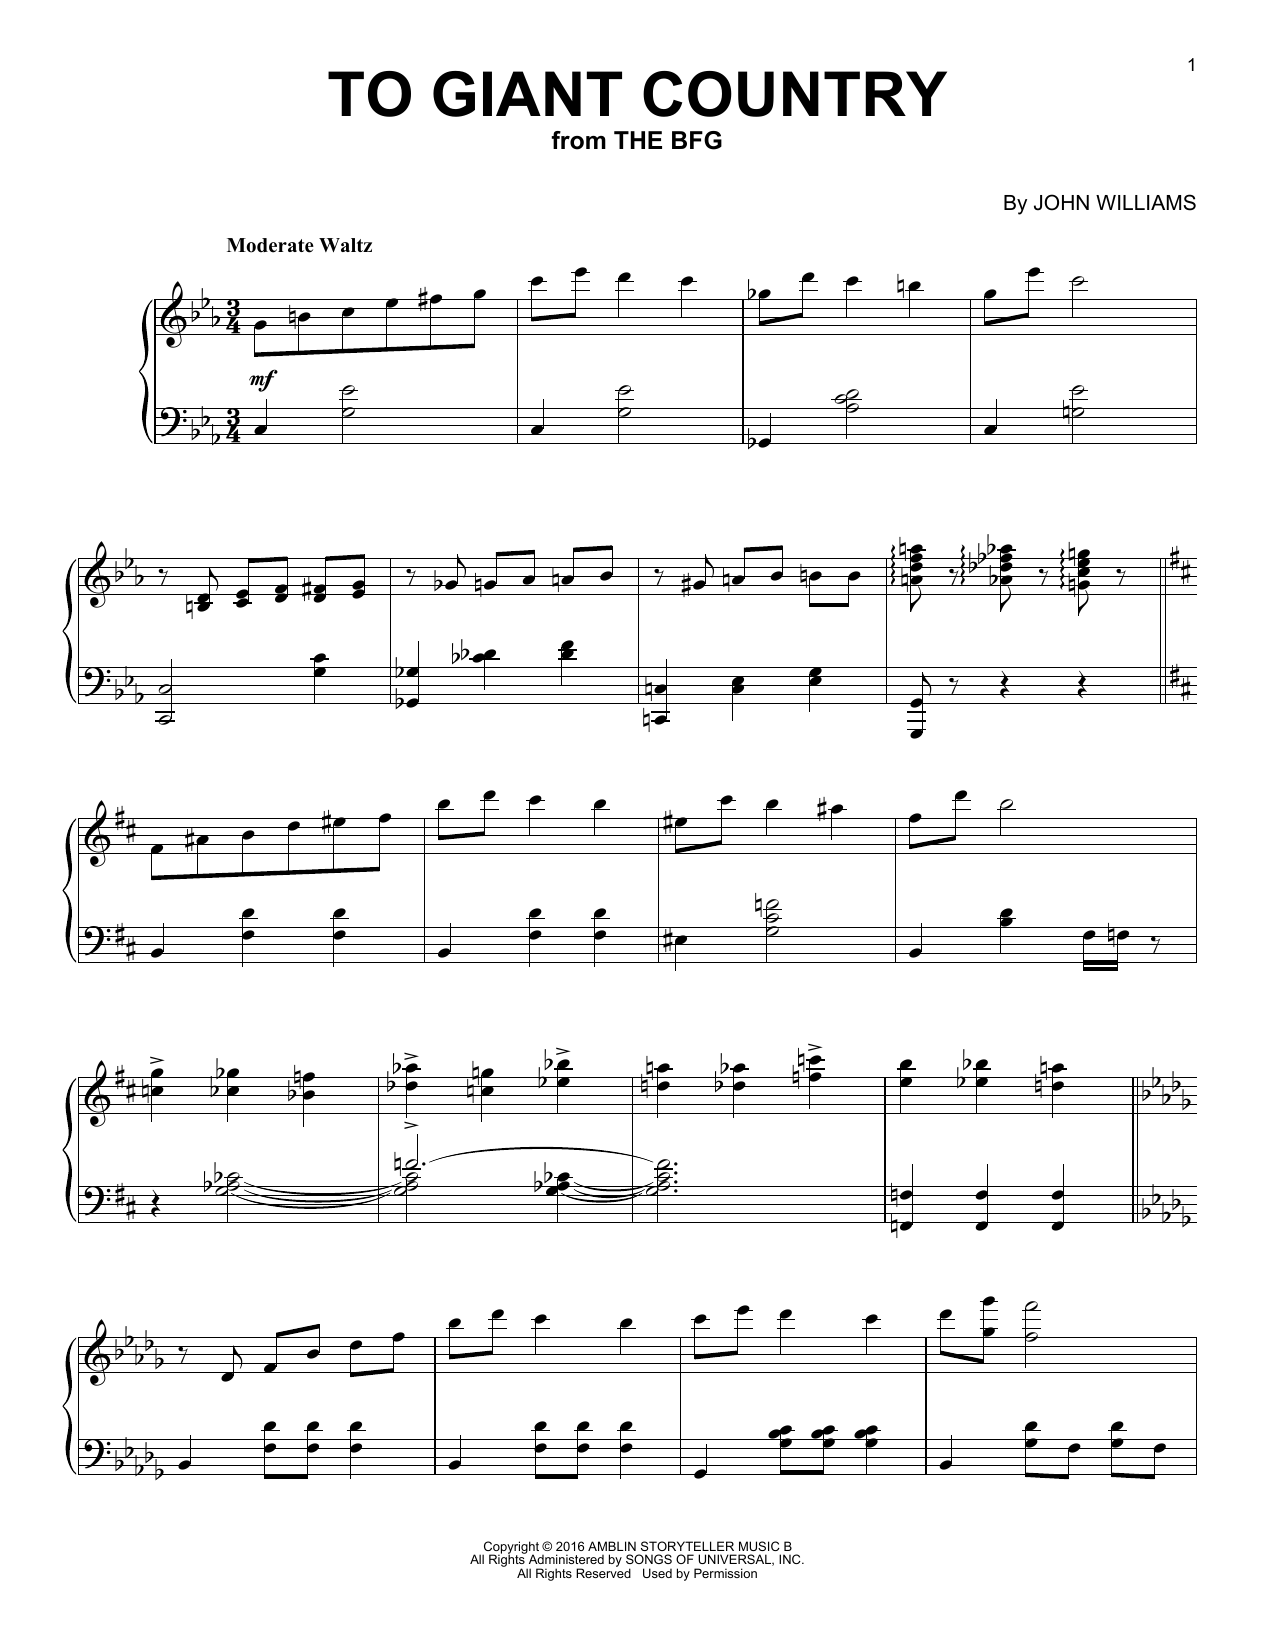 John Williams To Giant Country sheet music notes and chords. Download Printable PDF.